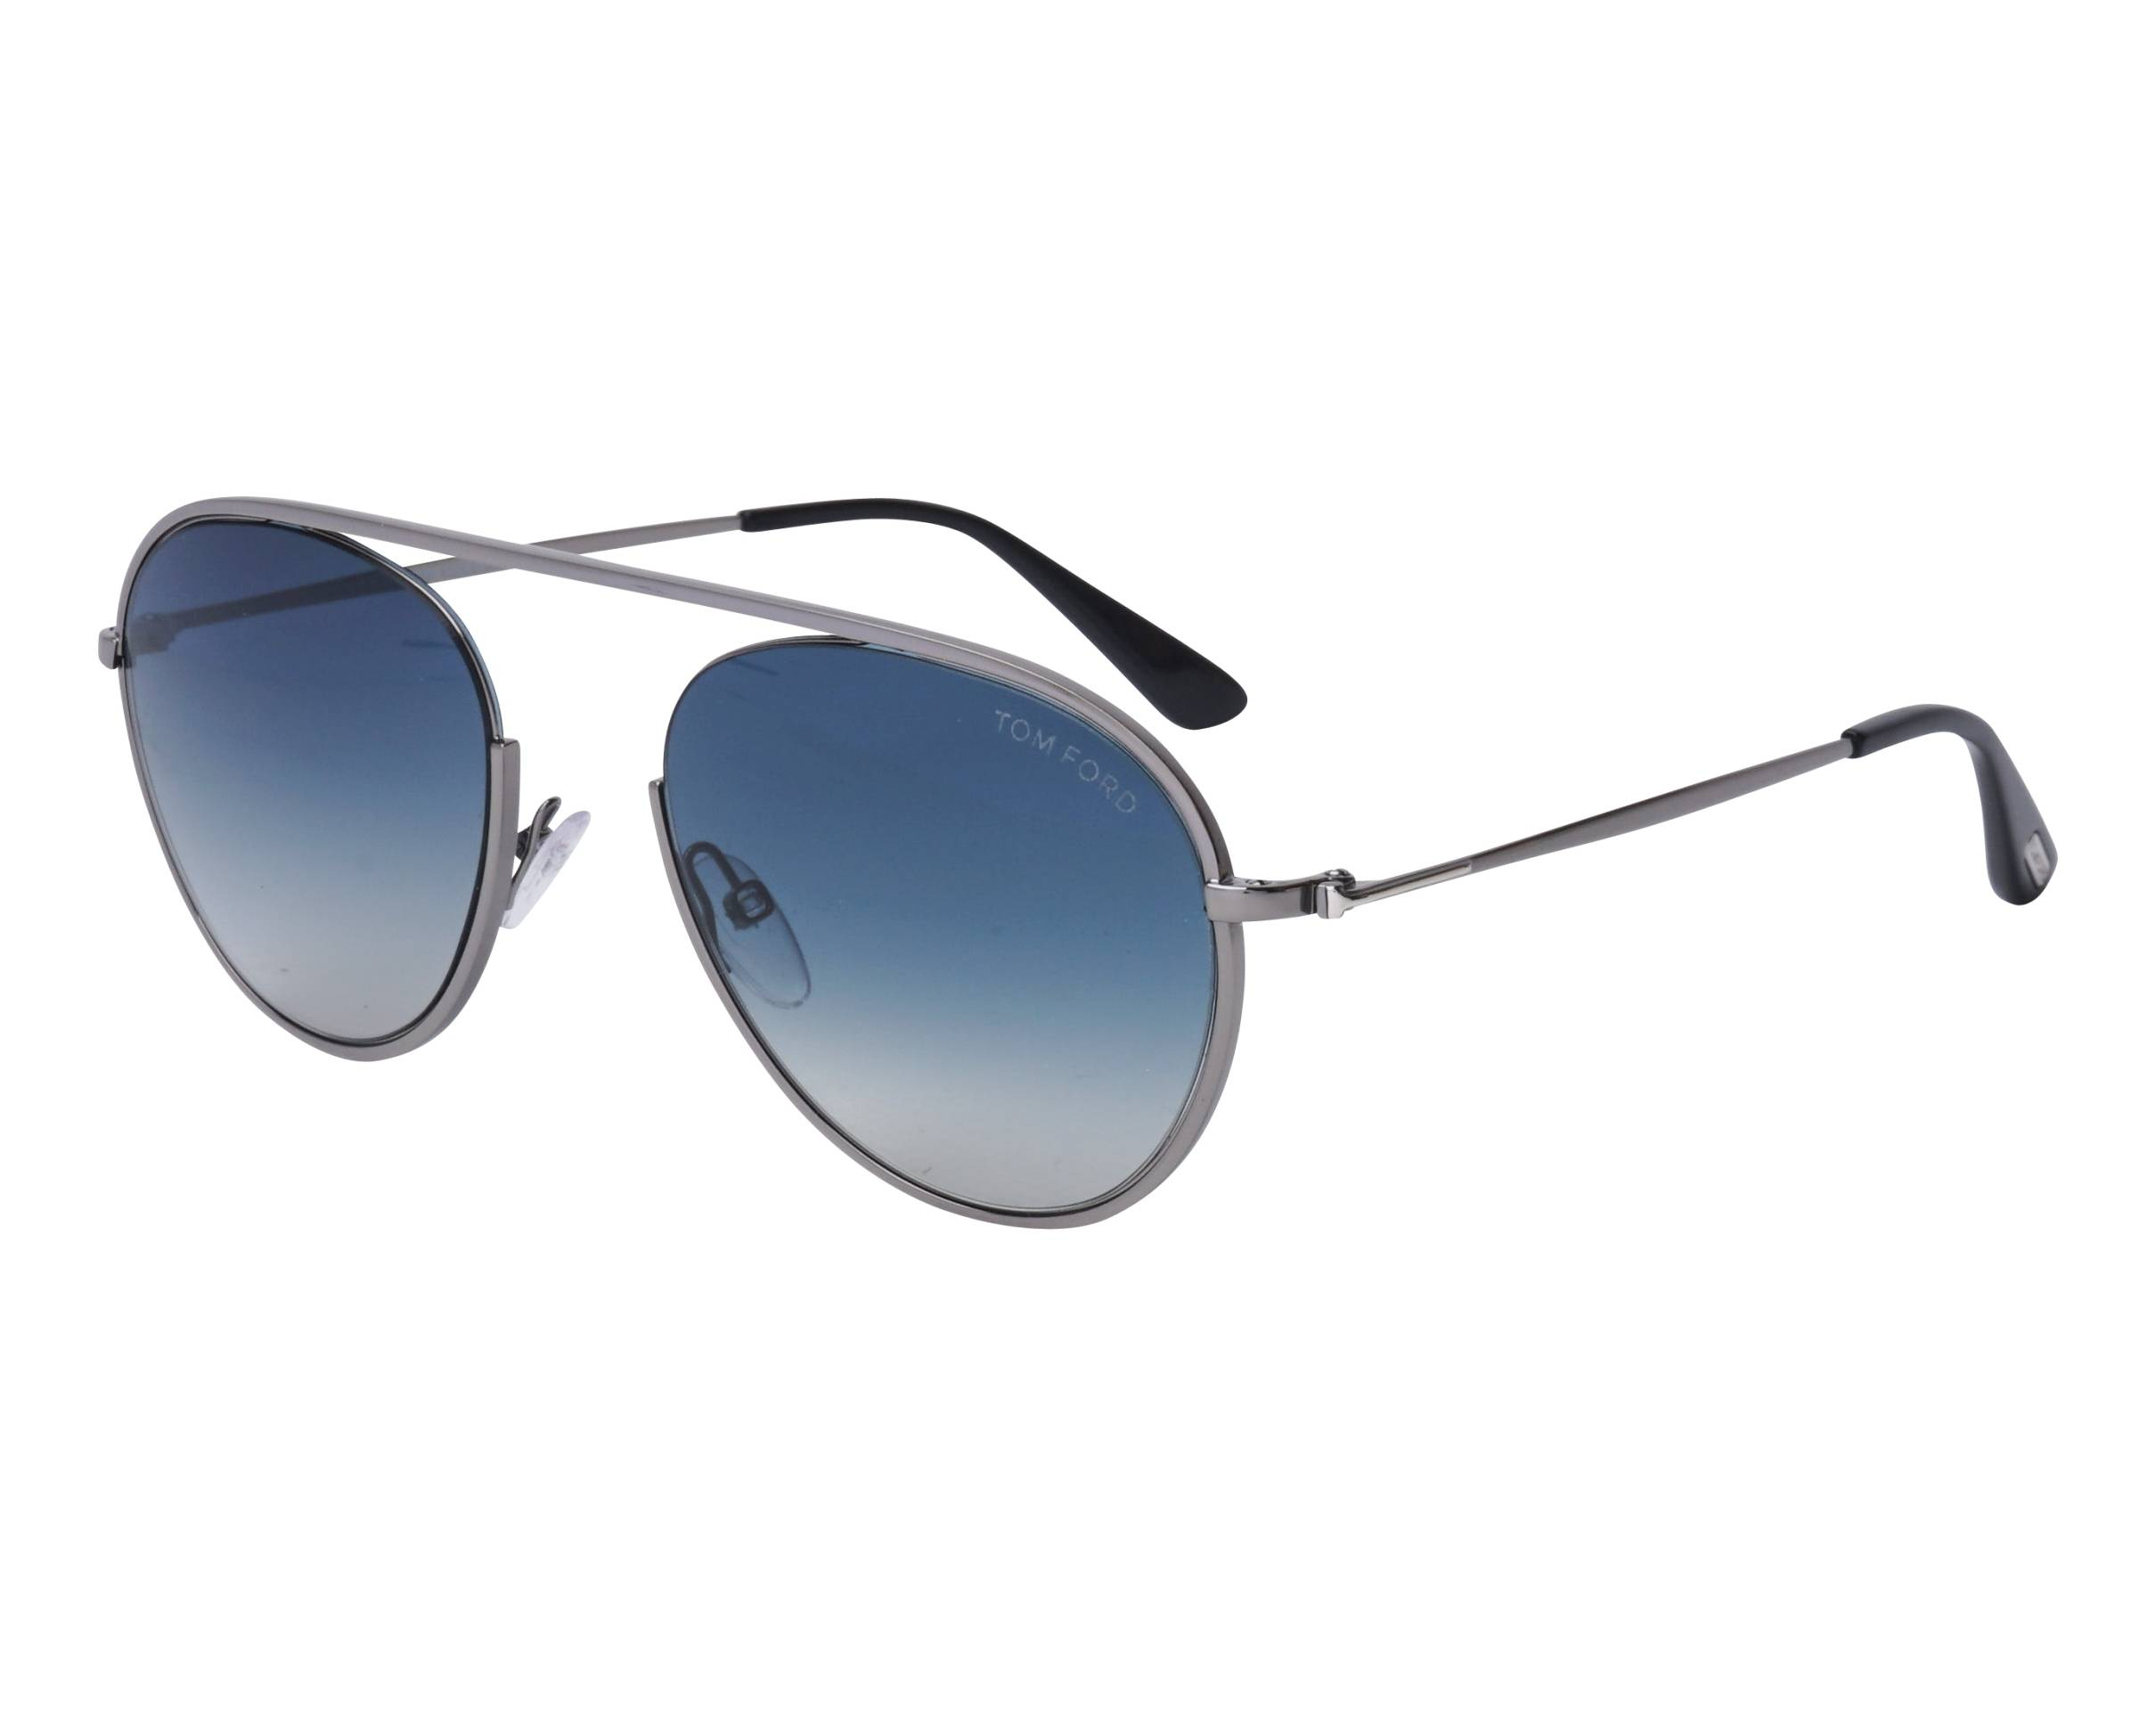 be009ed665 Sunglasses Tom Ford TF-599 08W 55-19 Silver profile view